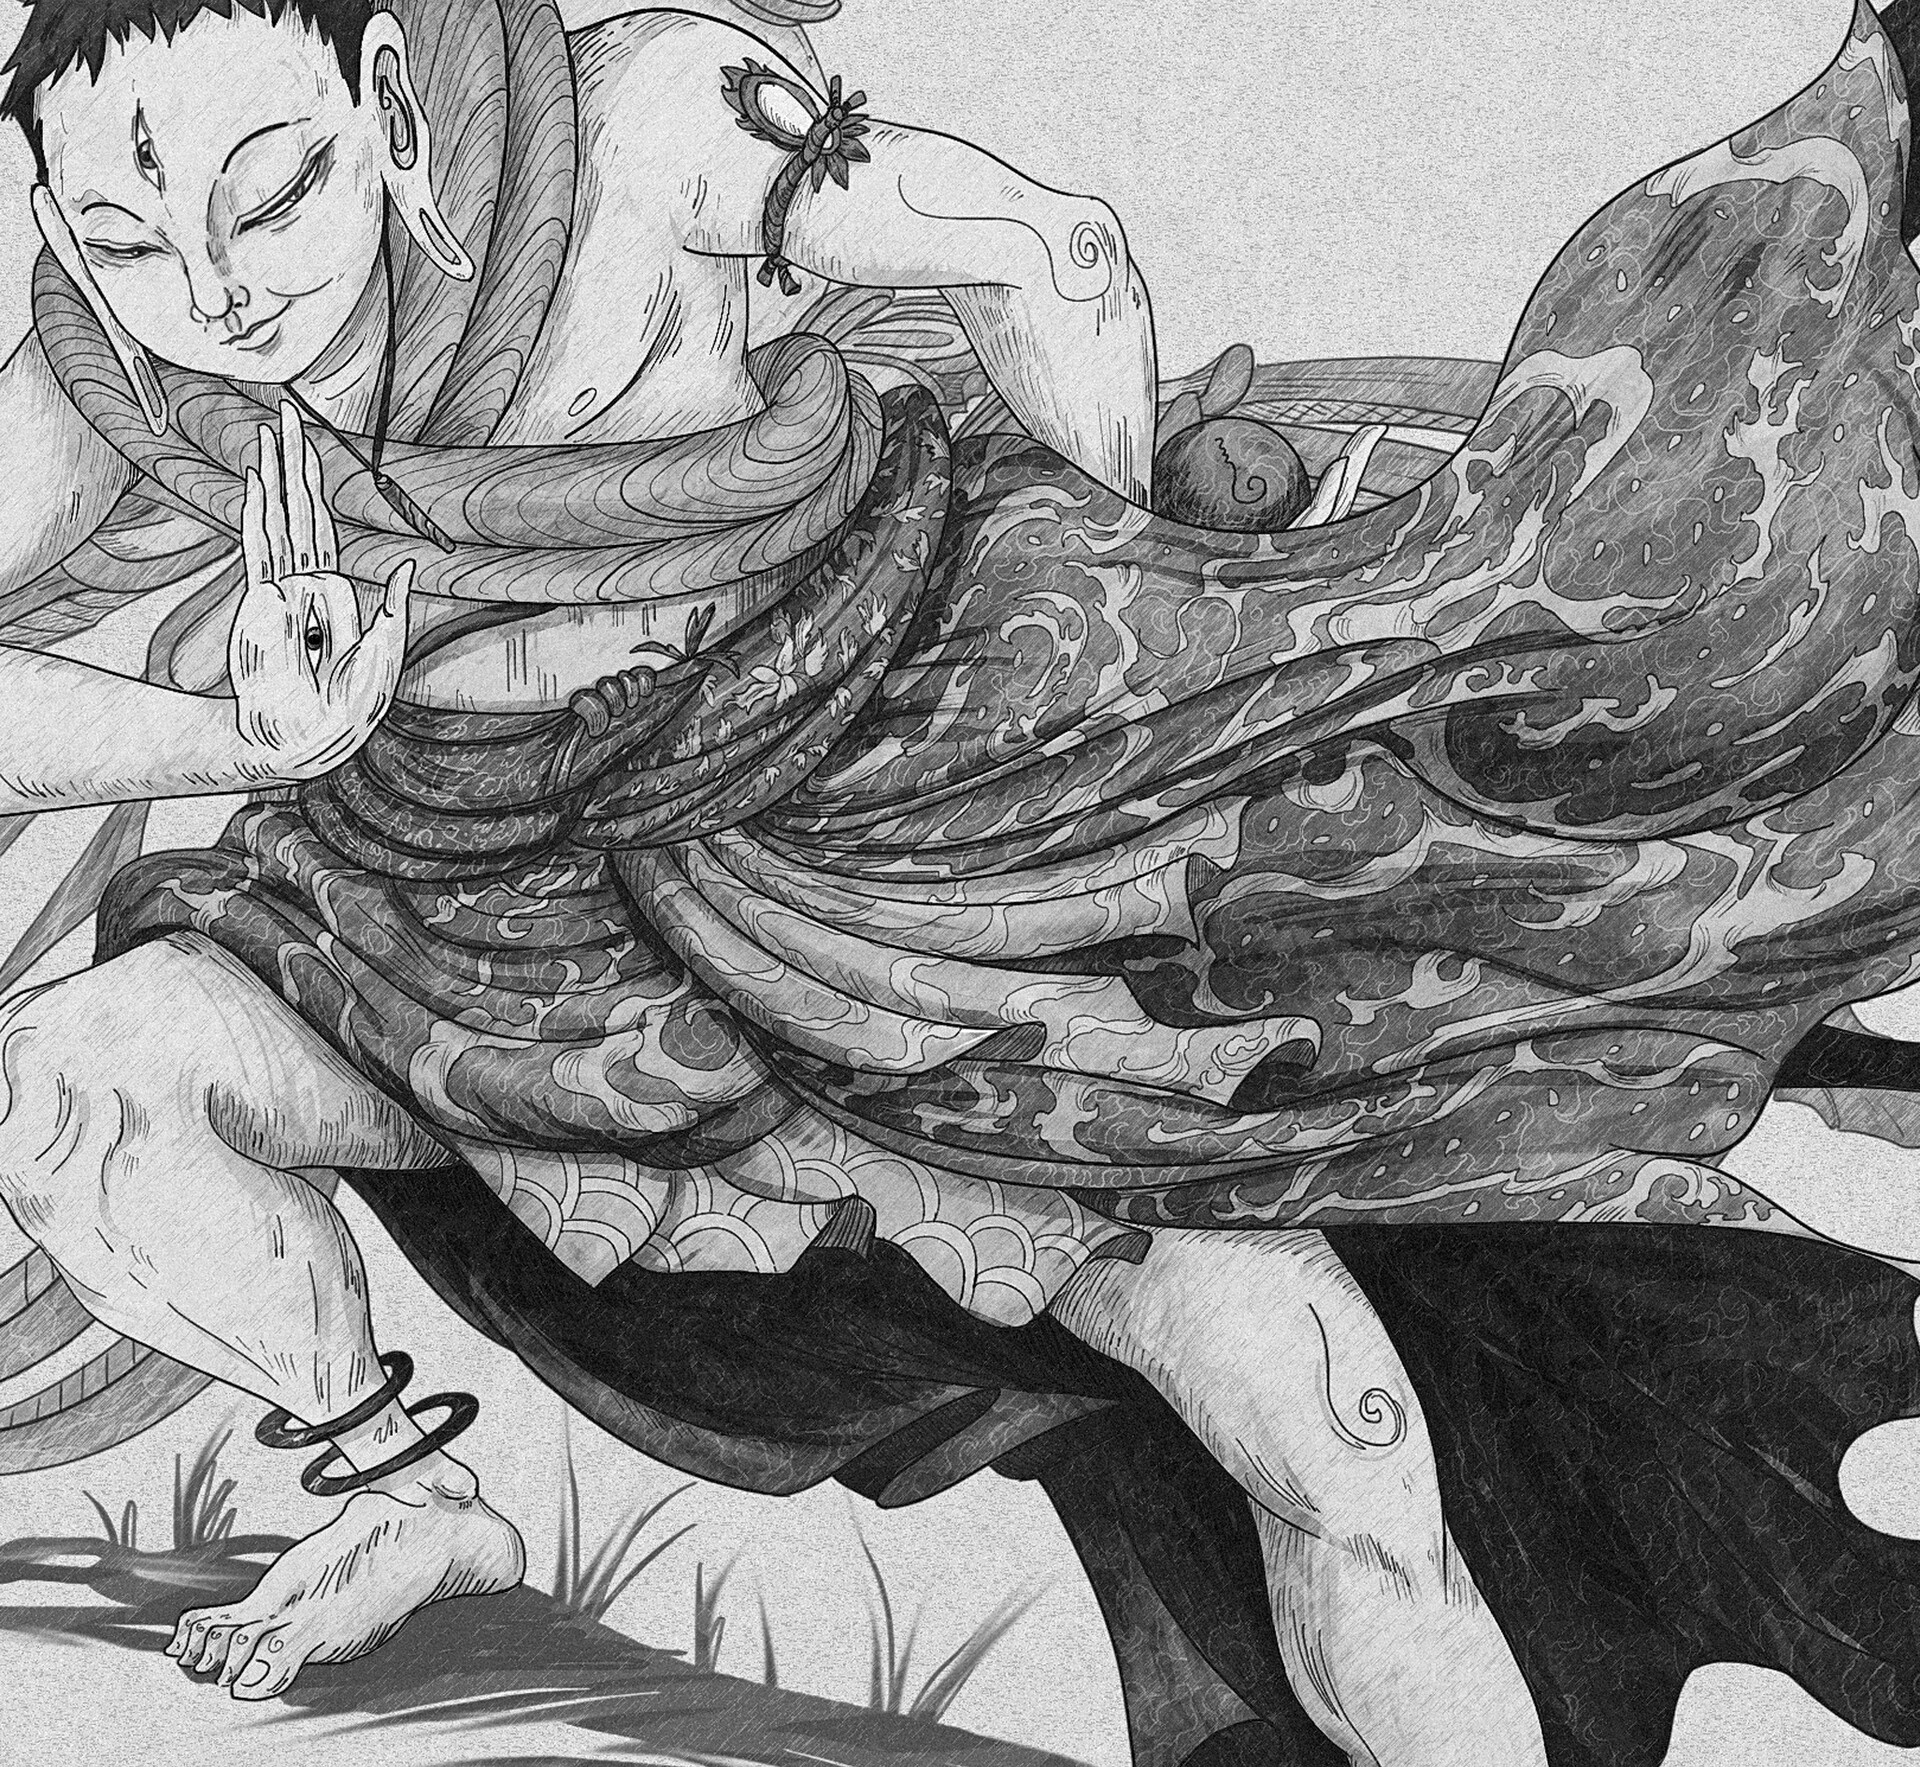 Christian benavides the ki boija the voyager with the key final art greyscale close up 3